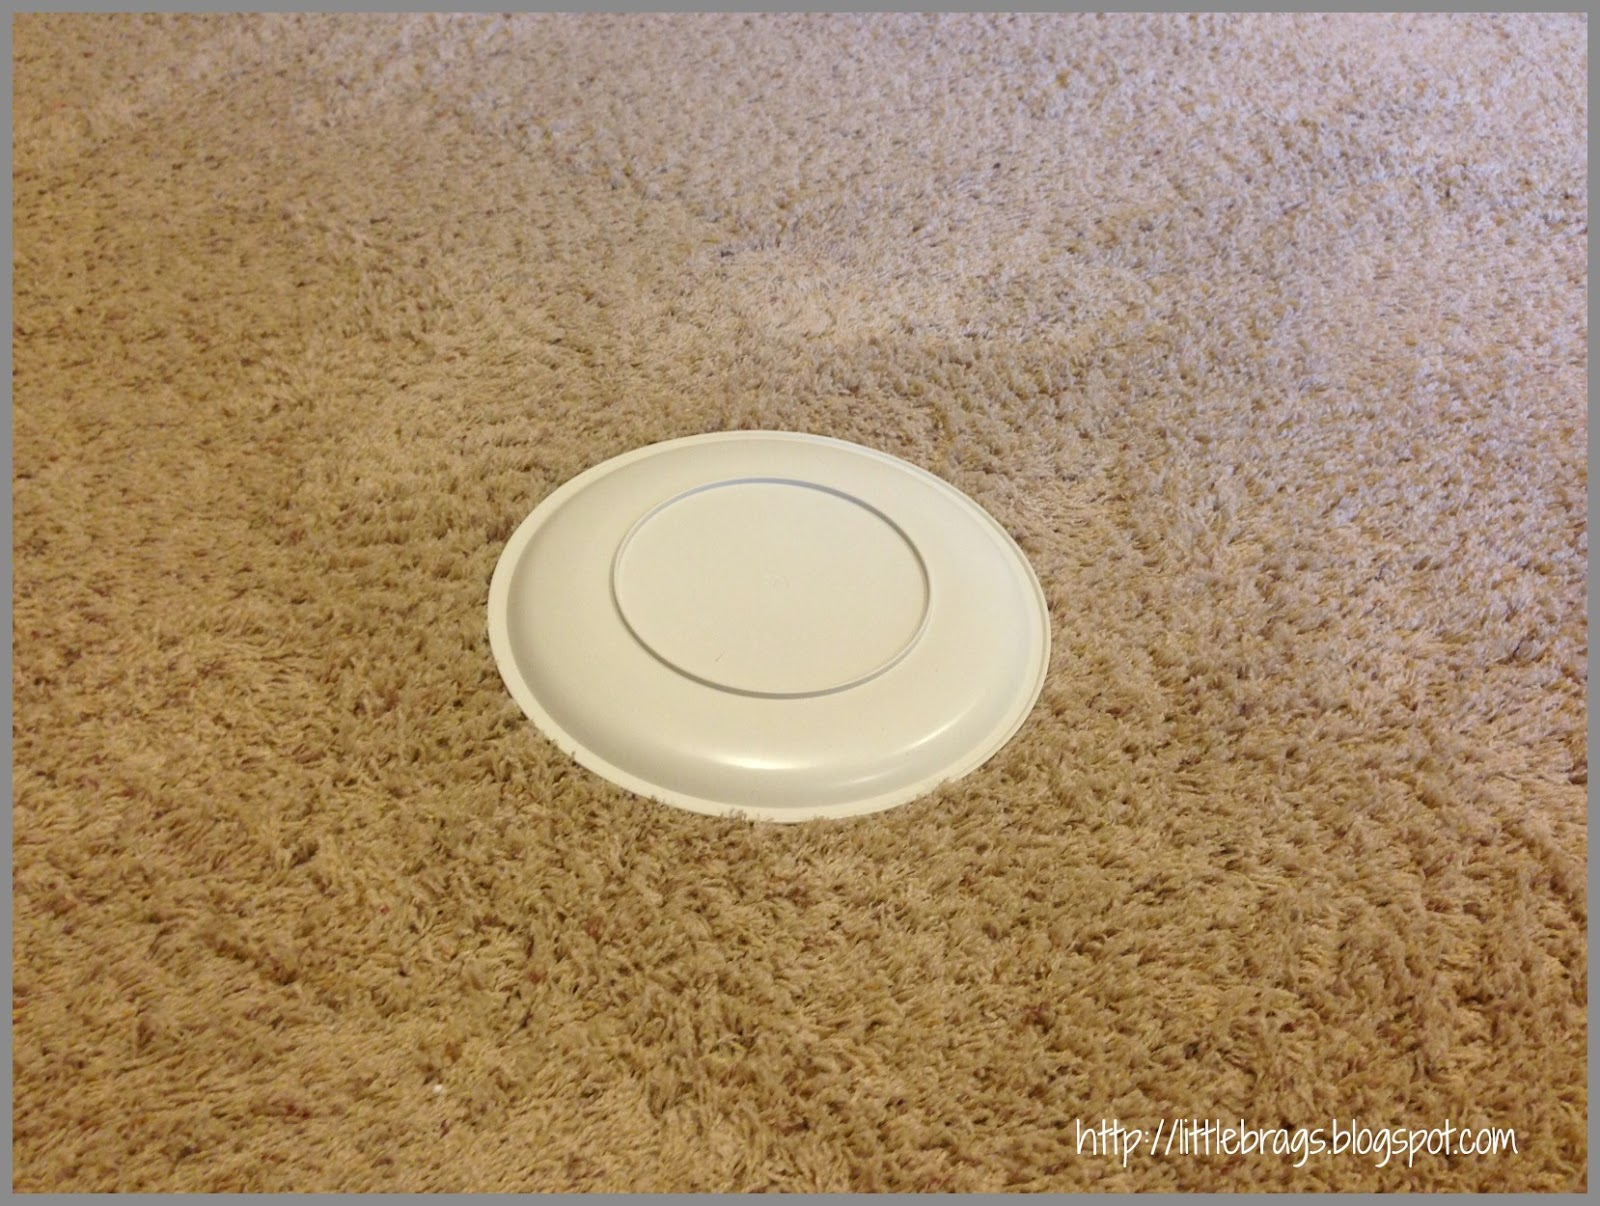 Little Brags: How To Get Rid Of Pet Stains On Carpet